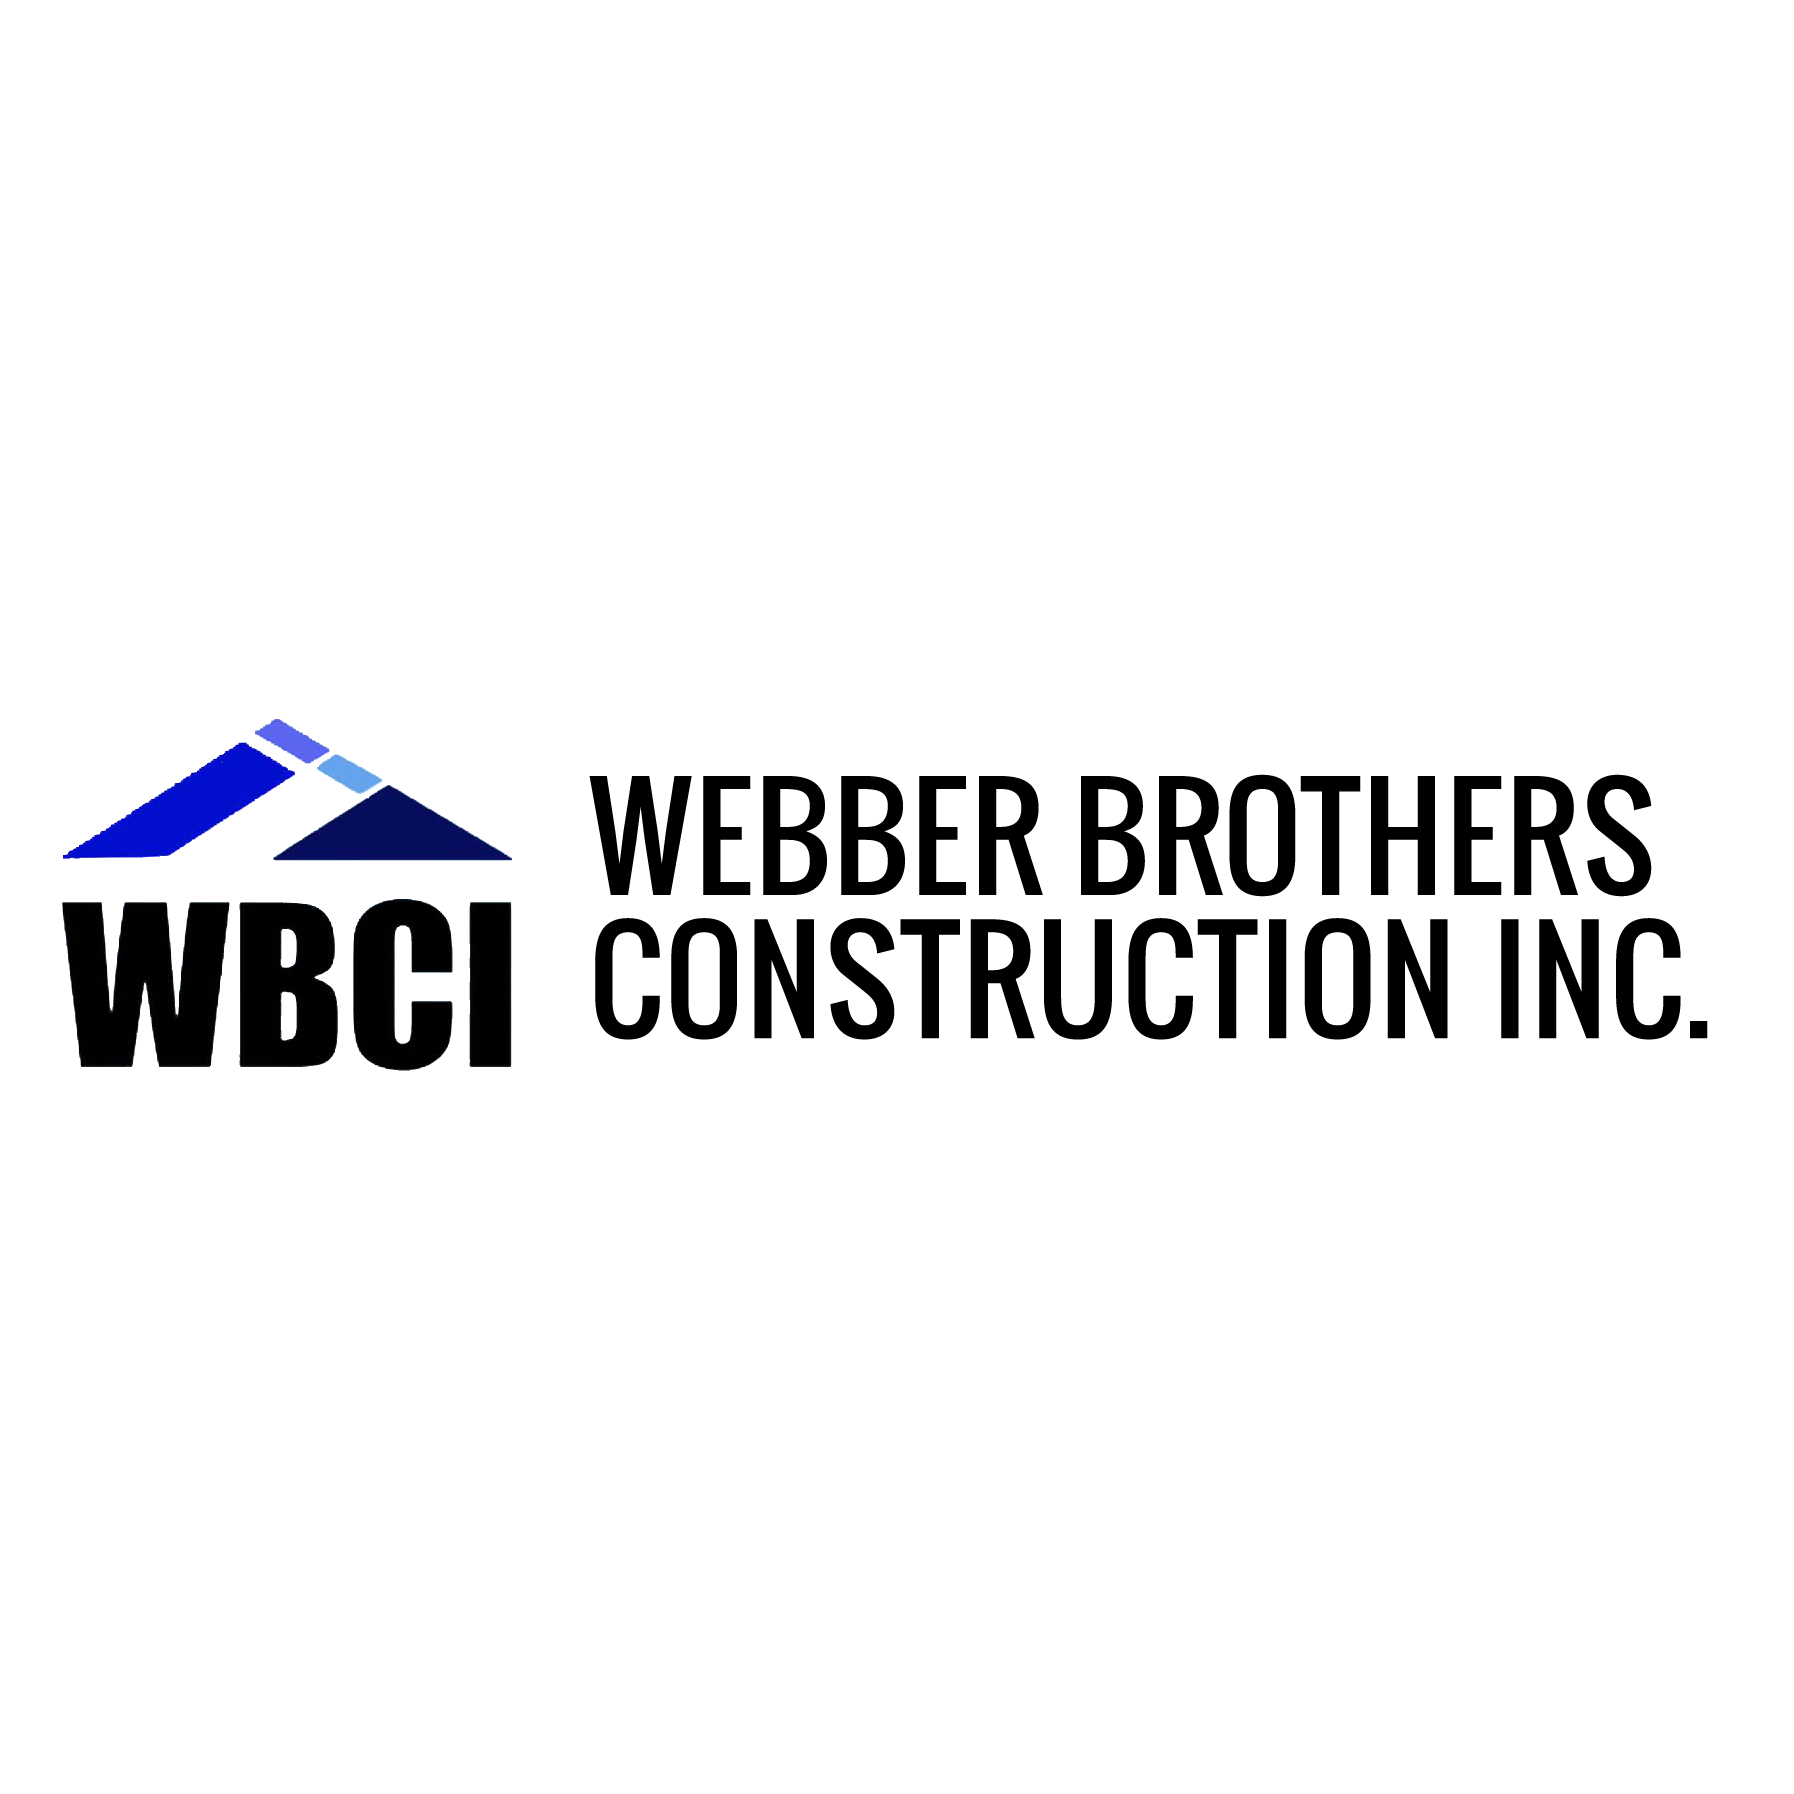 Webber Brothers Construction, Inc.